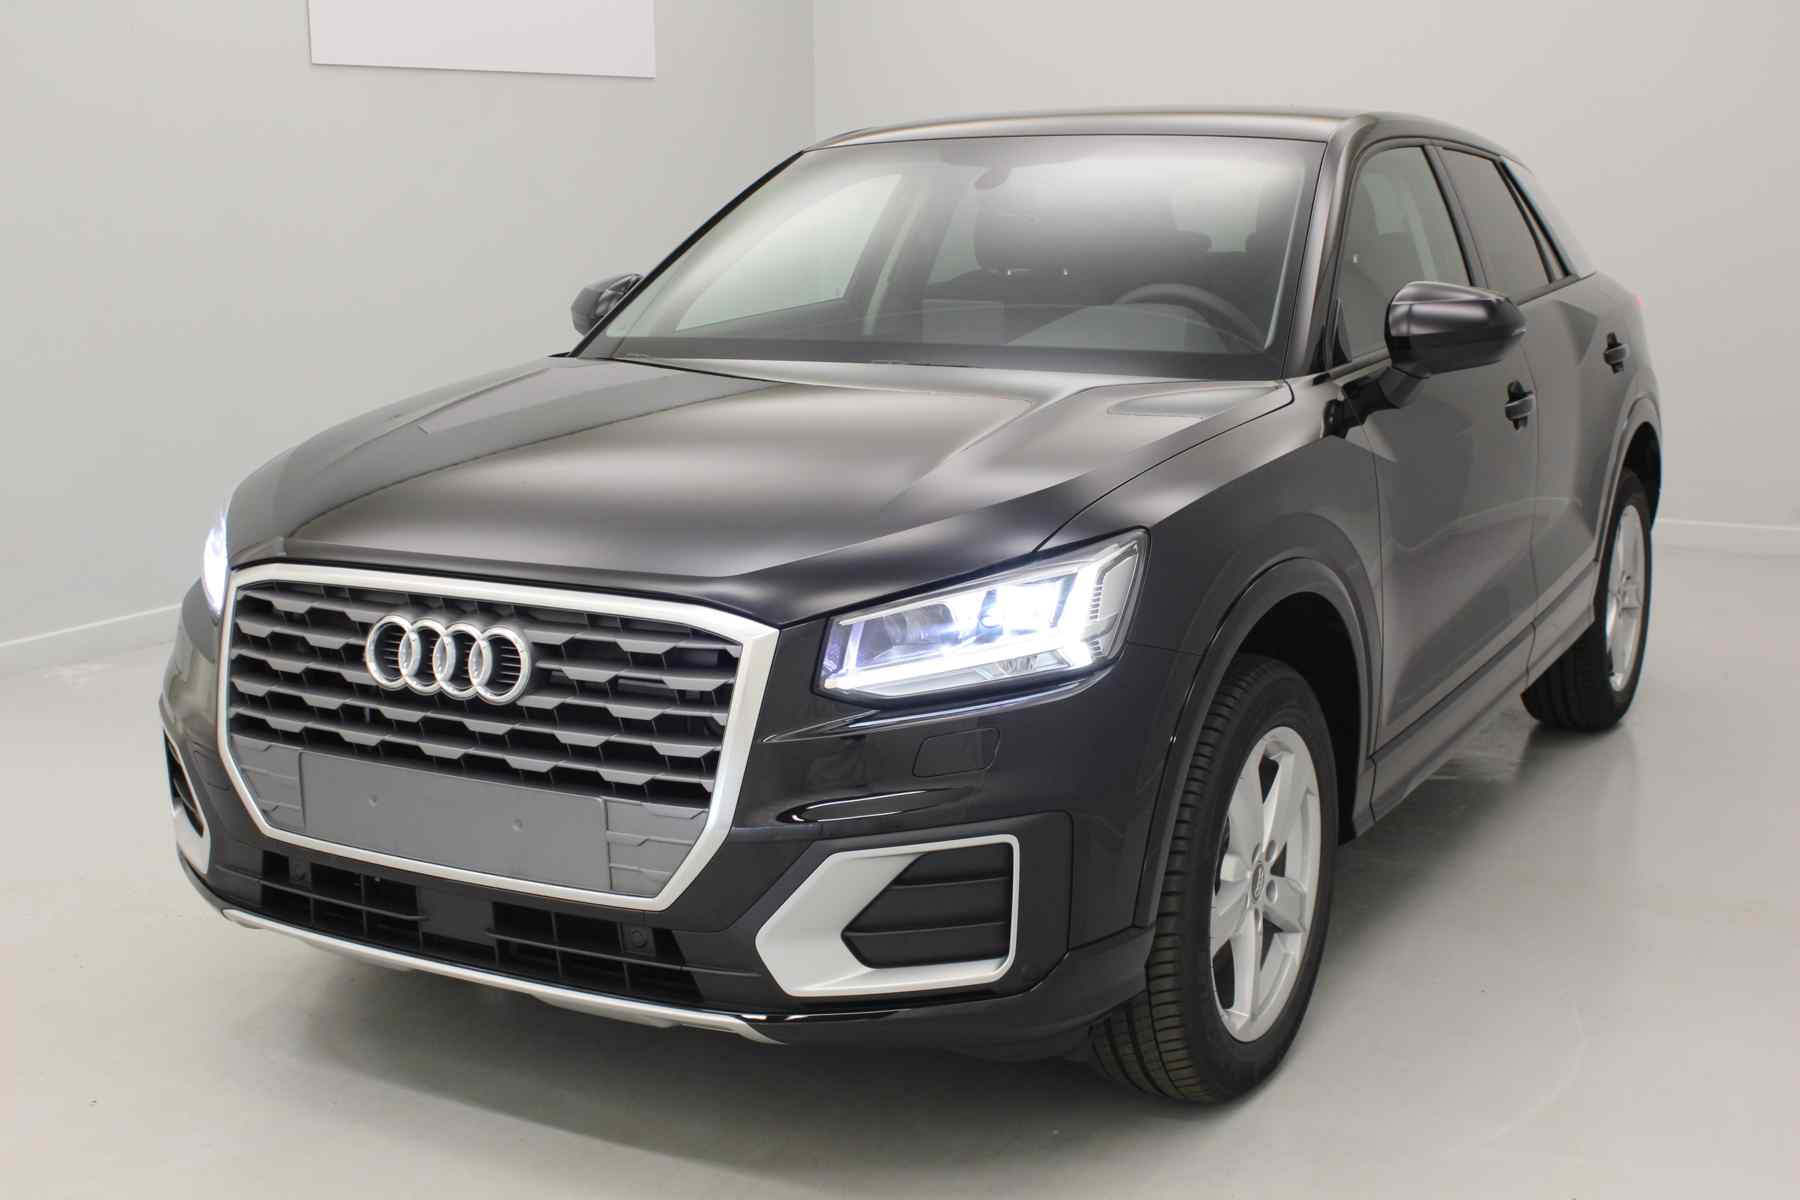 AUDI Q2 1.4 TFSI COD 150 ch S tronic 7 Sport Noir Mythic + Navigation+ Audi Parking System Plus + Caméra avec options